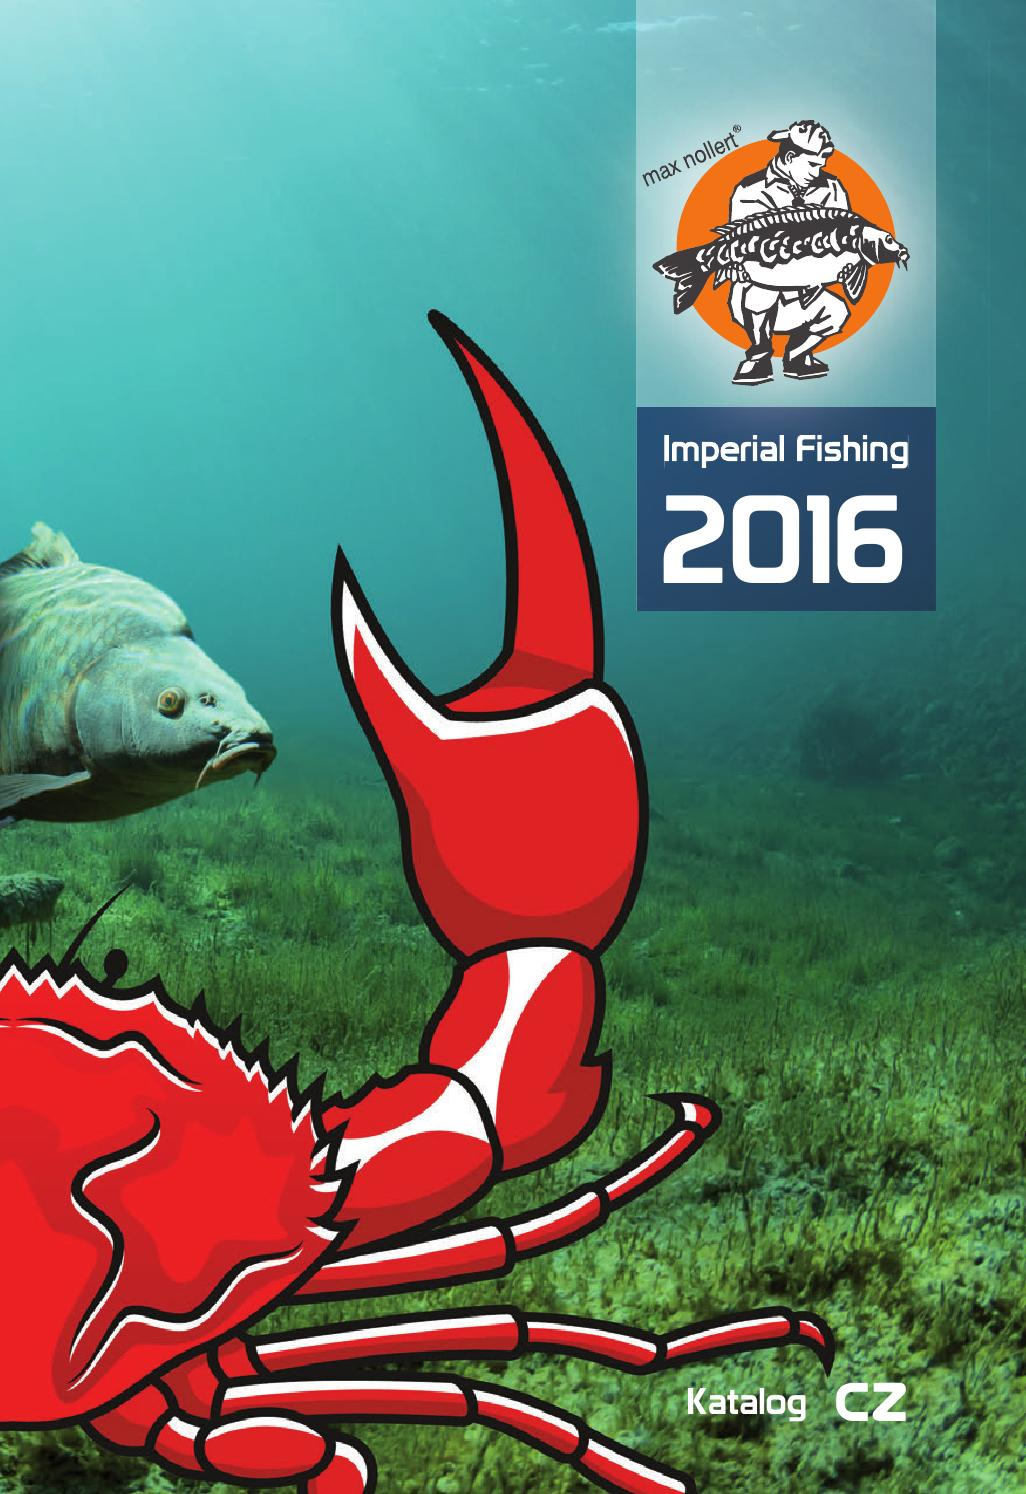 985694355d Imperial Fishing katalog 2016 CZ by Imperial Fishing CZ-SK - issuu